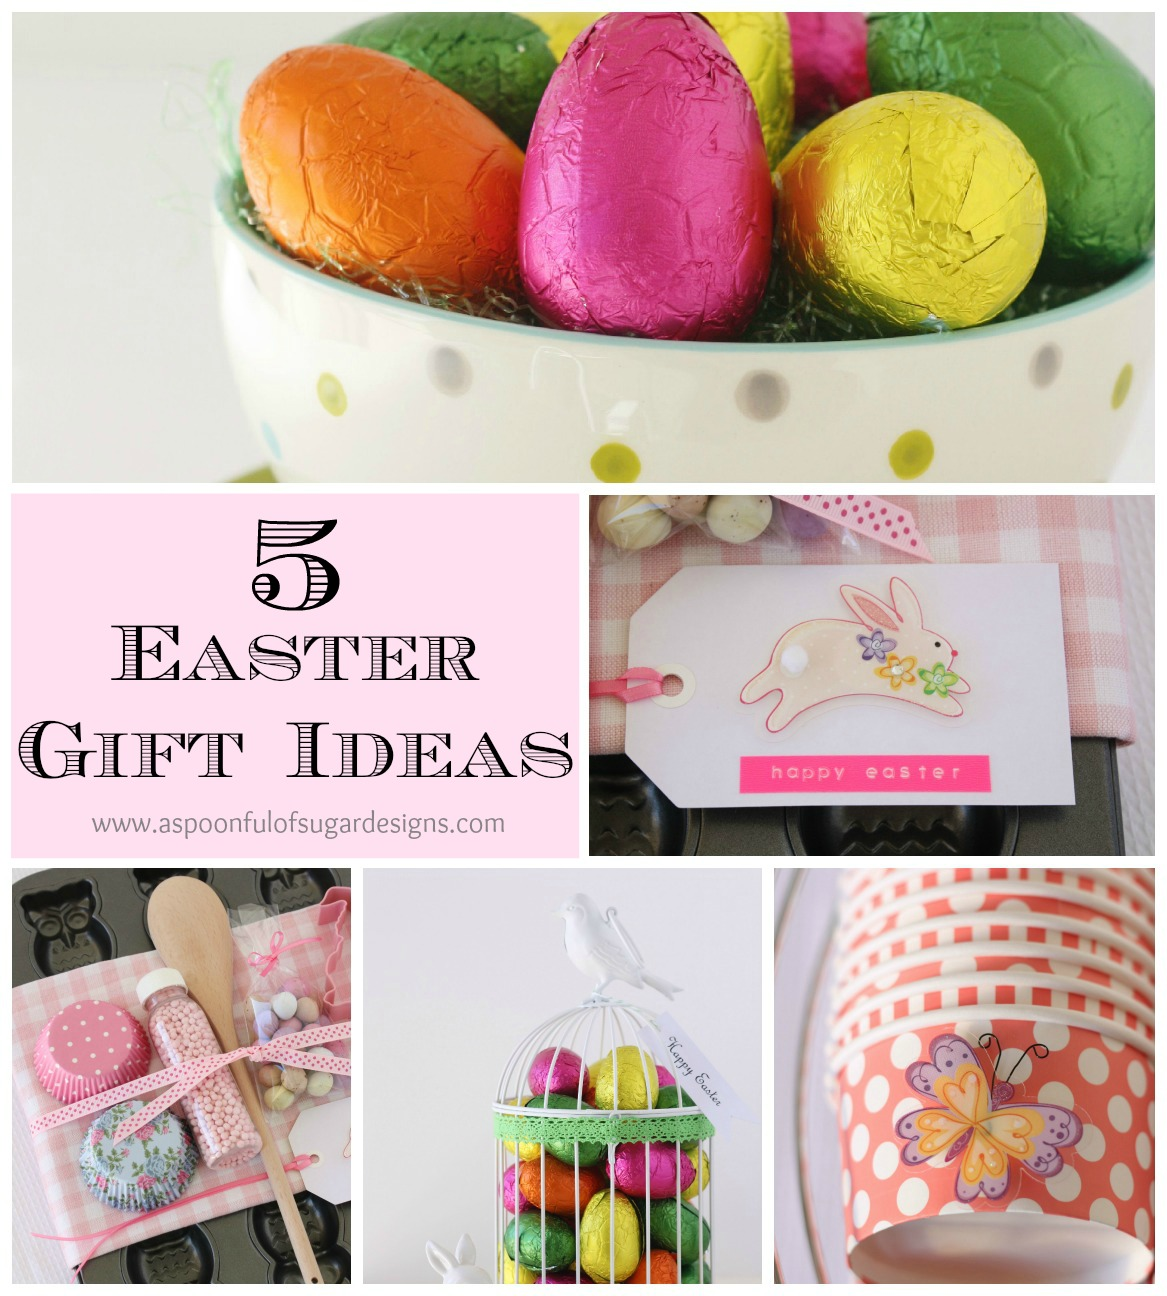 Easter gift ideas a spoonful of sugar we celebrate easter with our extended family over a special meal we exchange small easter gifts usually chocolate eggs or similar negle Choice Image